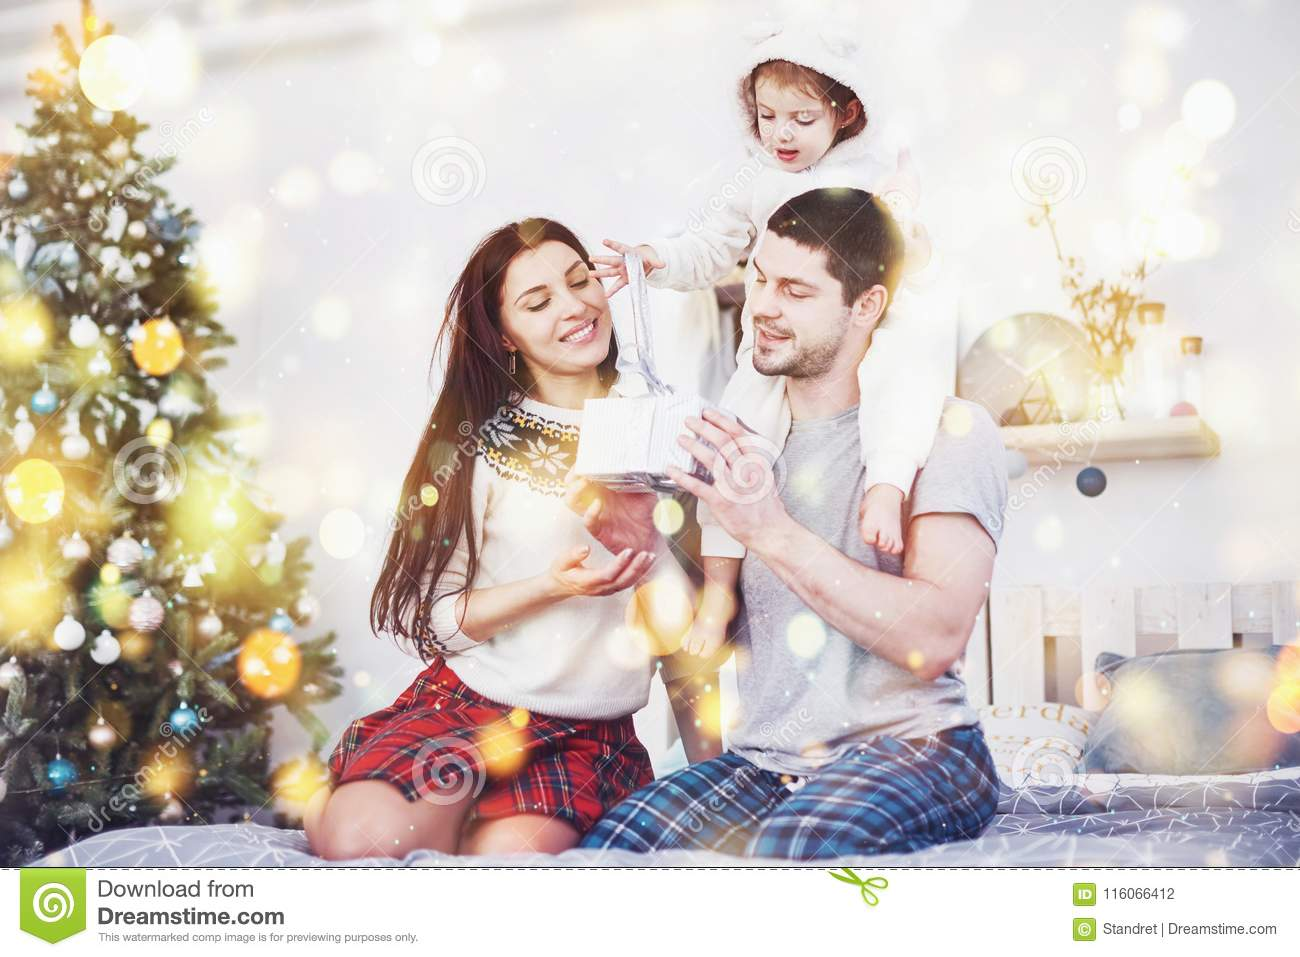 Happy family at christmas in morning opening gifts together near the fir tree. The concept of family happiness and well